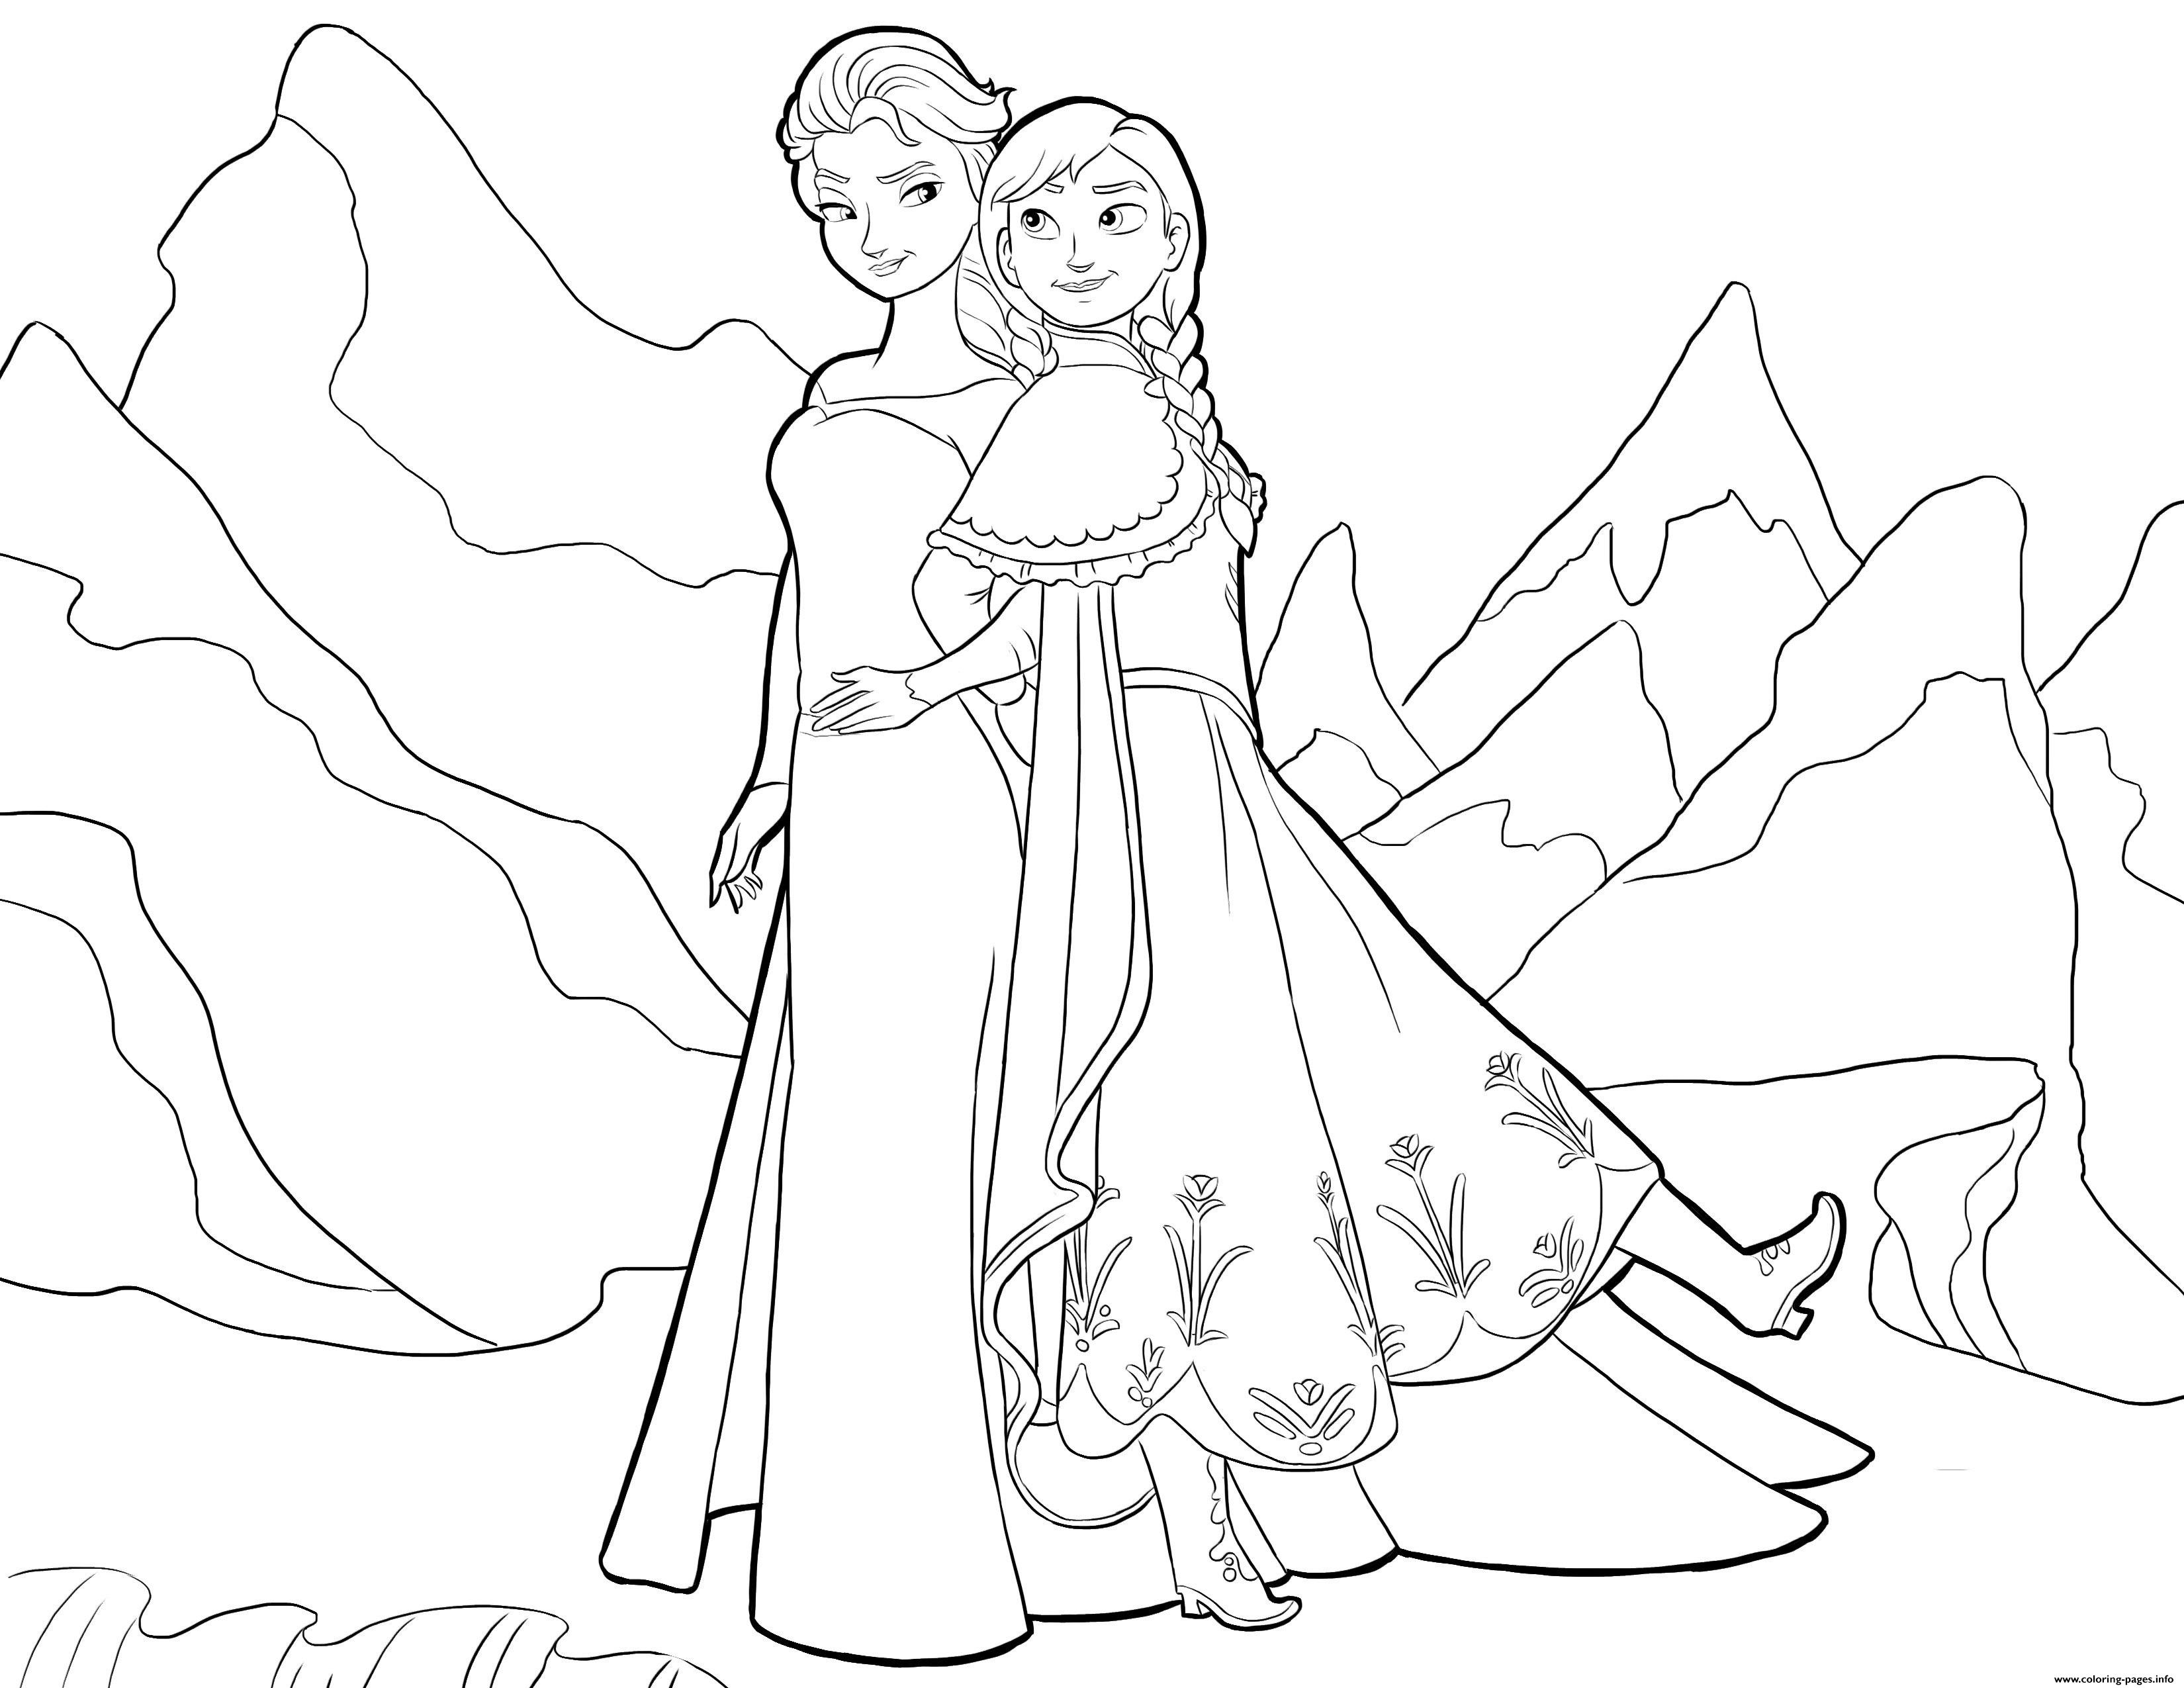 Elsa And Anna Frozen Disney Coloring Pages Printable